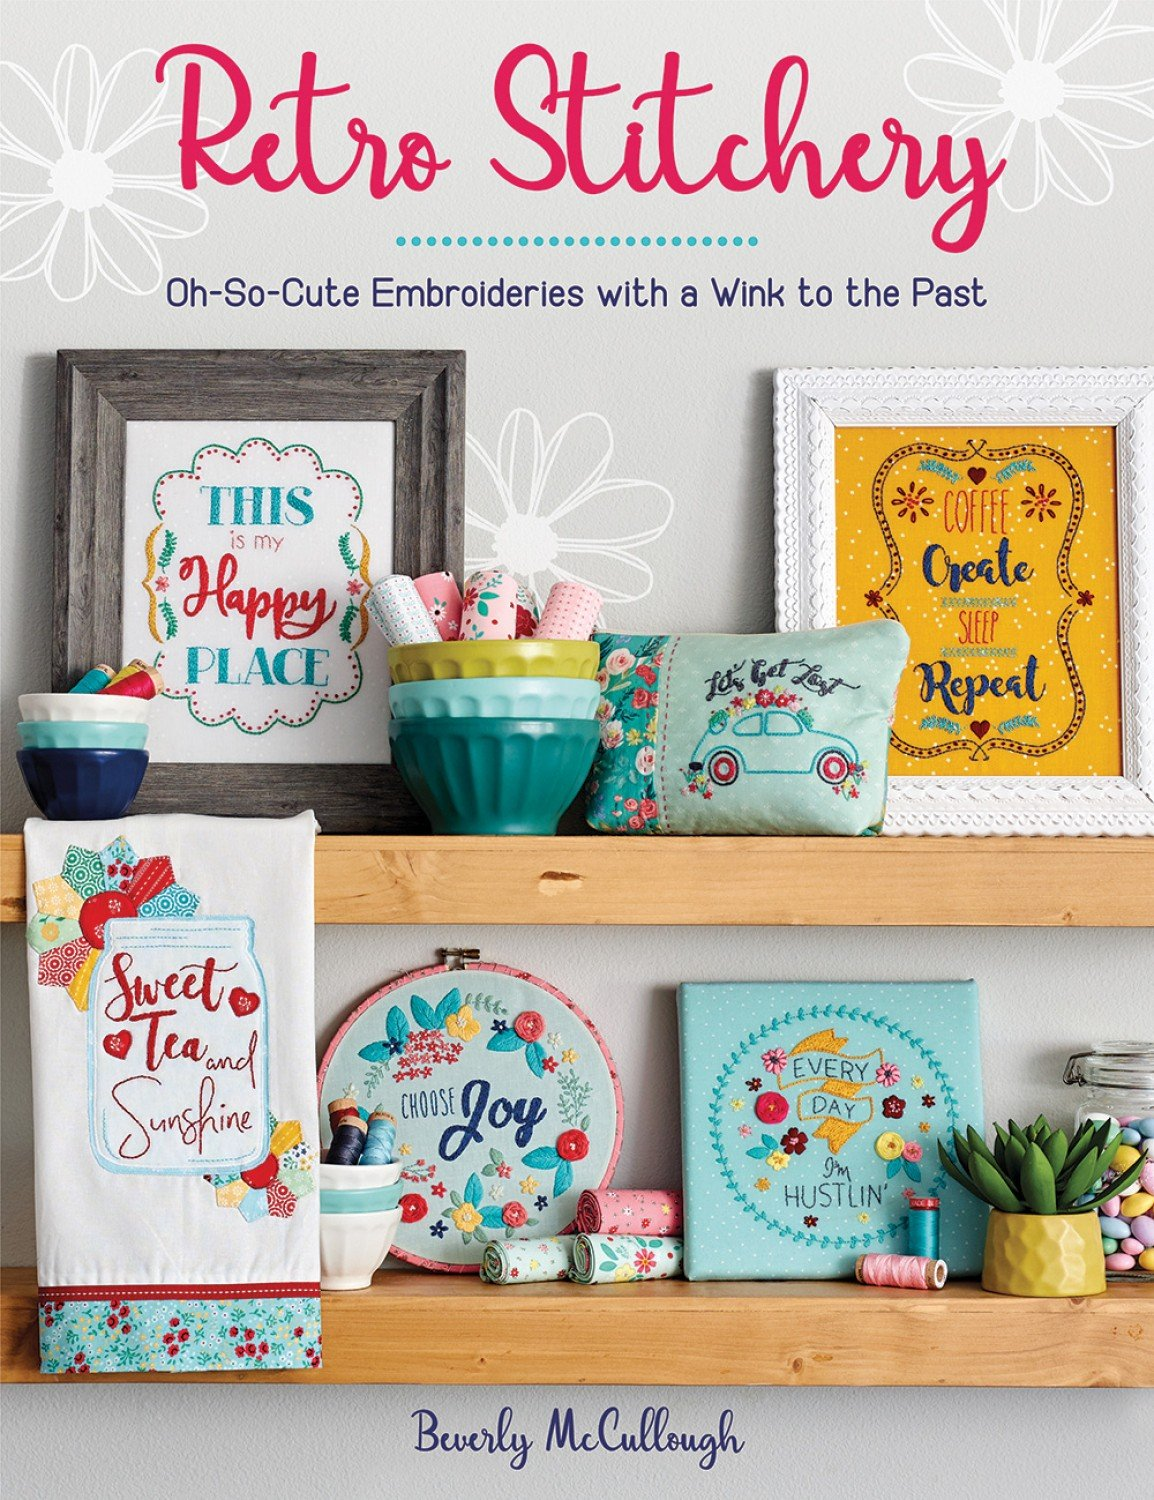 Retro Stitchery Oh So Cute Embroideries with a Wink To The Past ~ RELEASE DATE MAR 1/21 ~